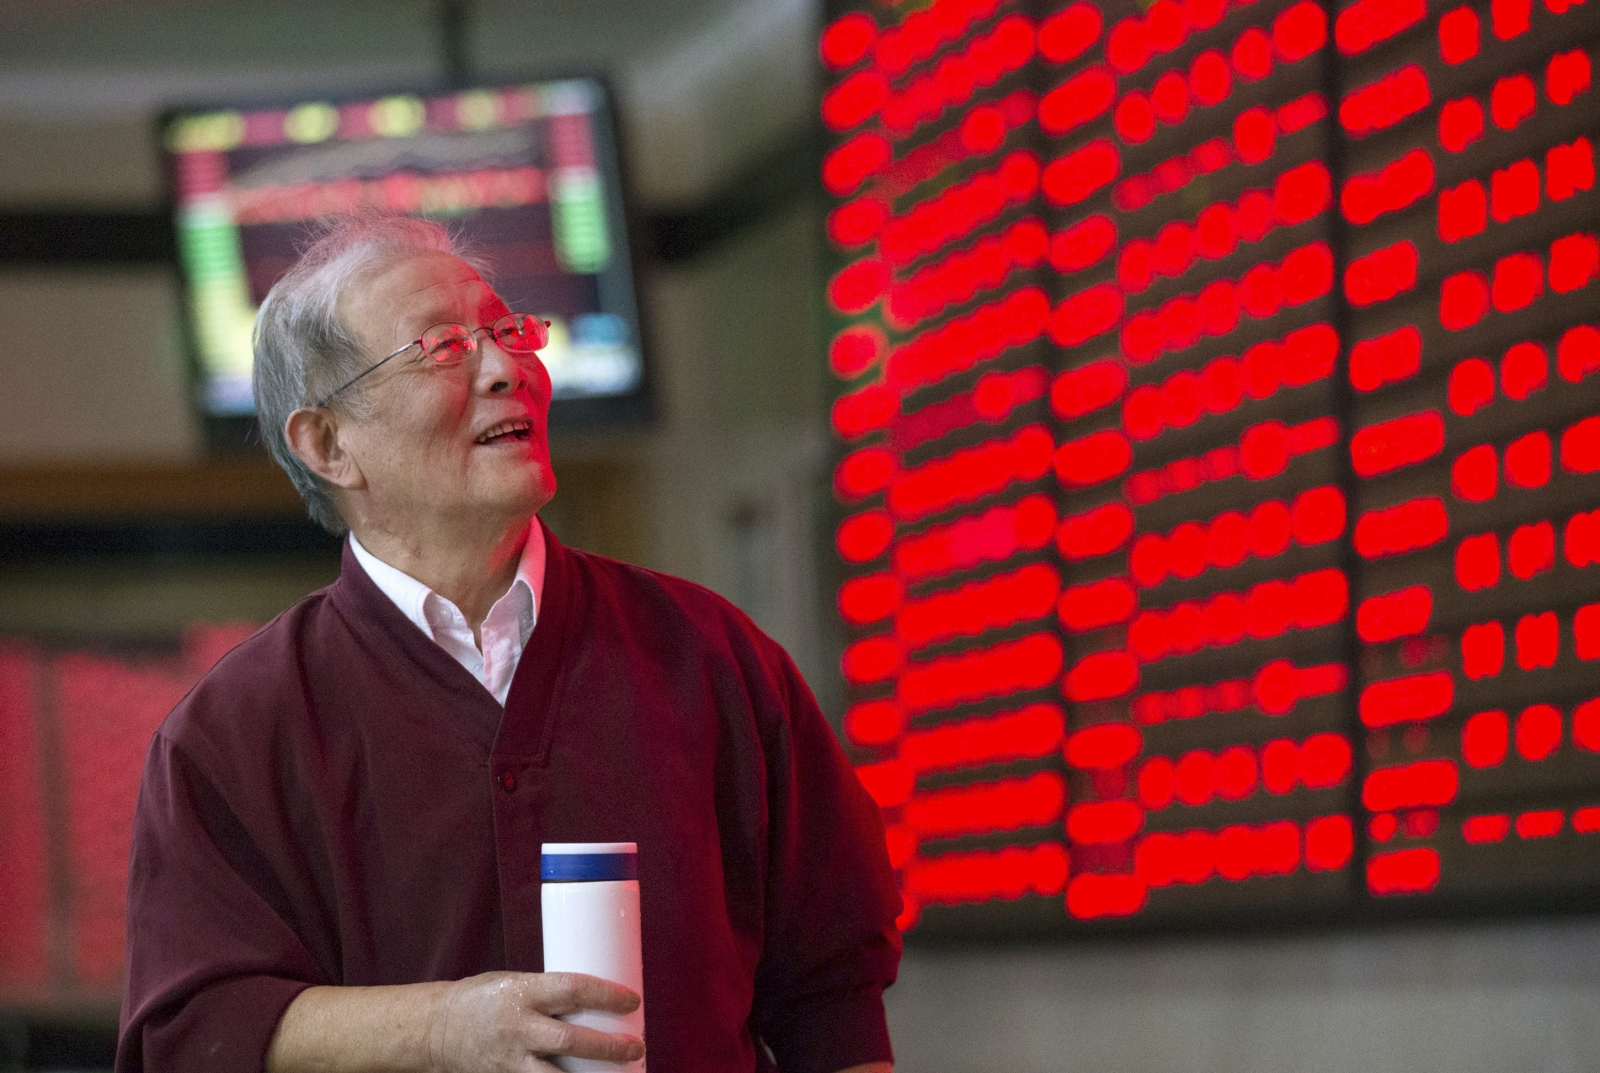 Barring the Shanghai Composite, Asian stock market indices gain following Yellen's comments